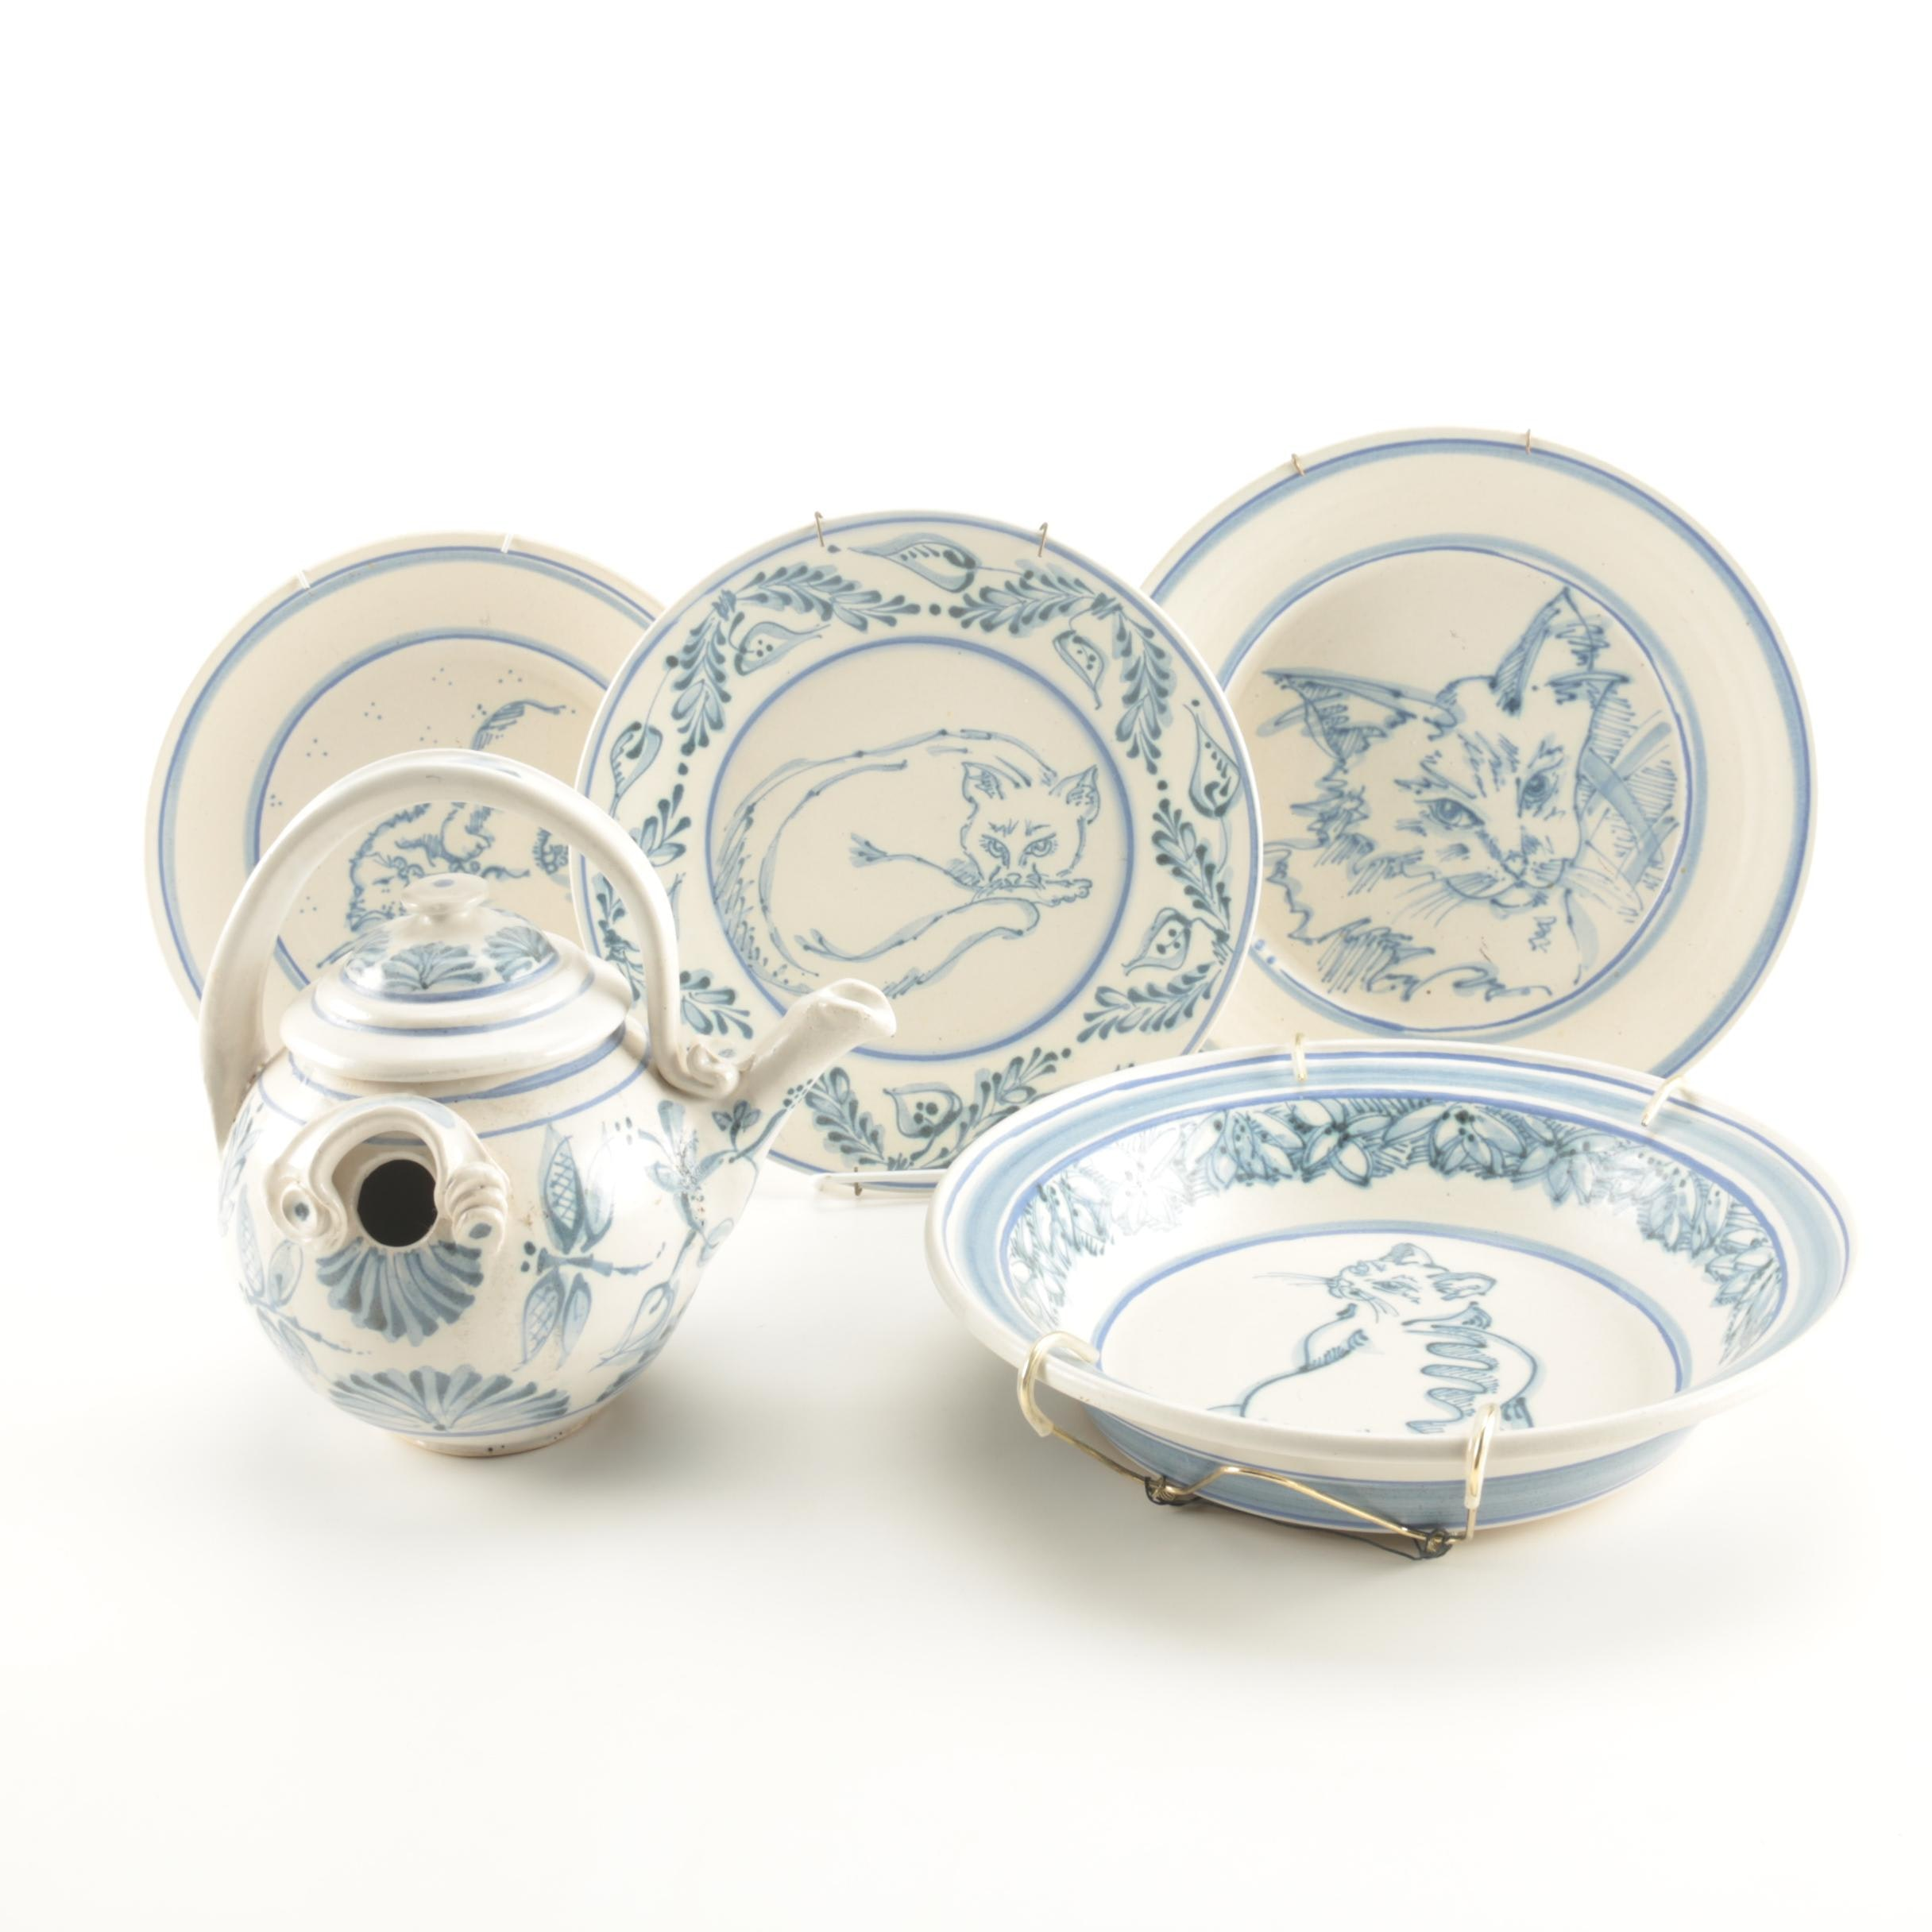 Blue and White Cat Themed Decorative Pottery by Davis